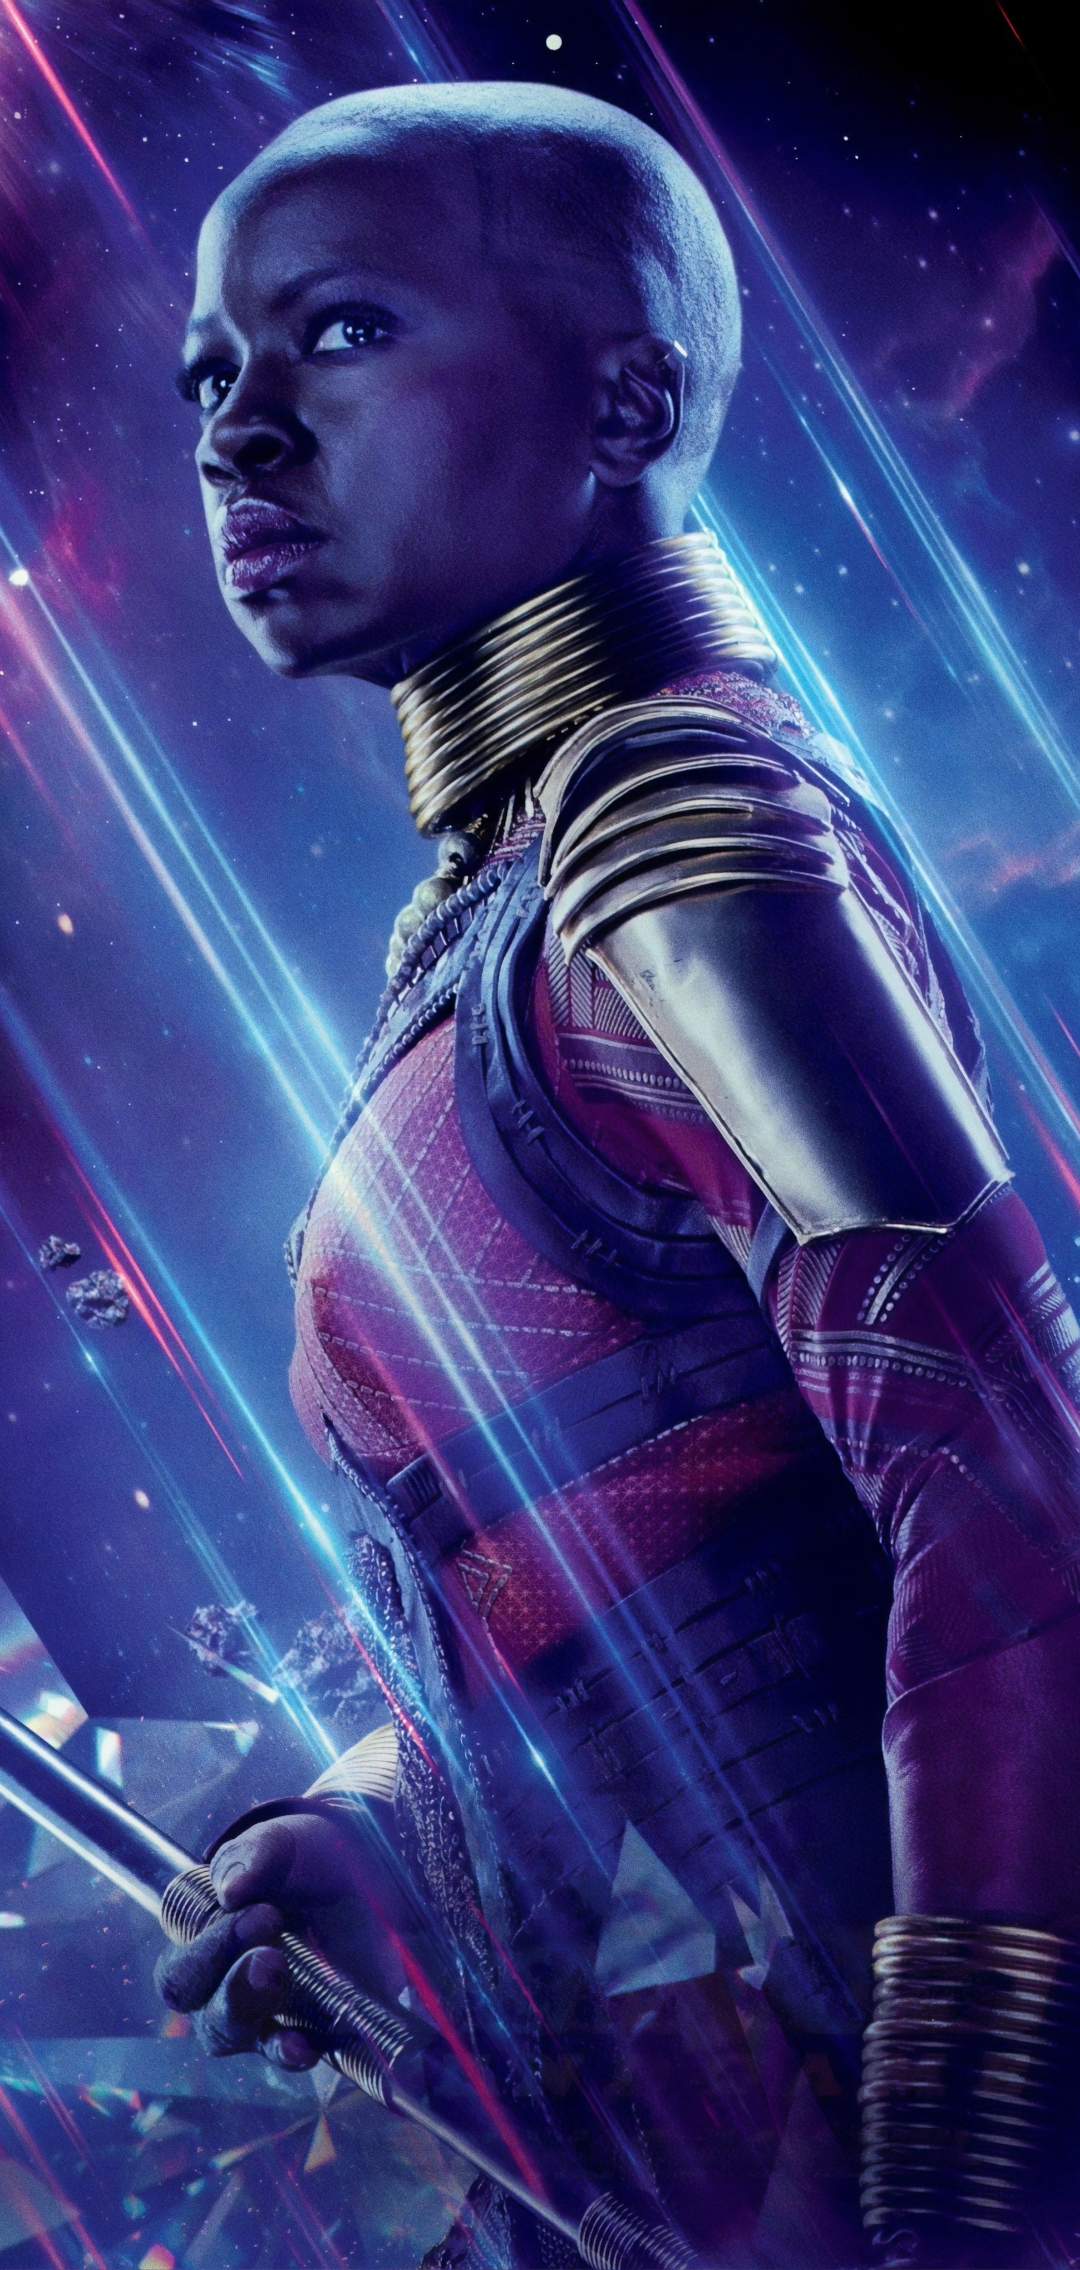 1080x2270 Okoye in Avengers Endgame 1080x2270 Resolution Wallpapers